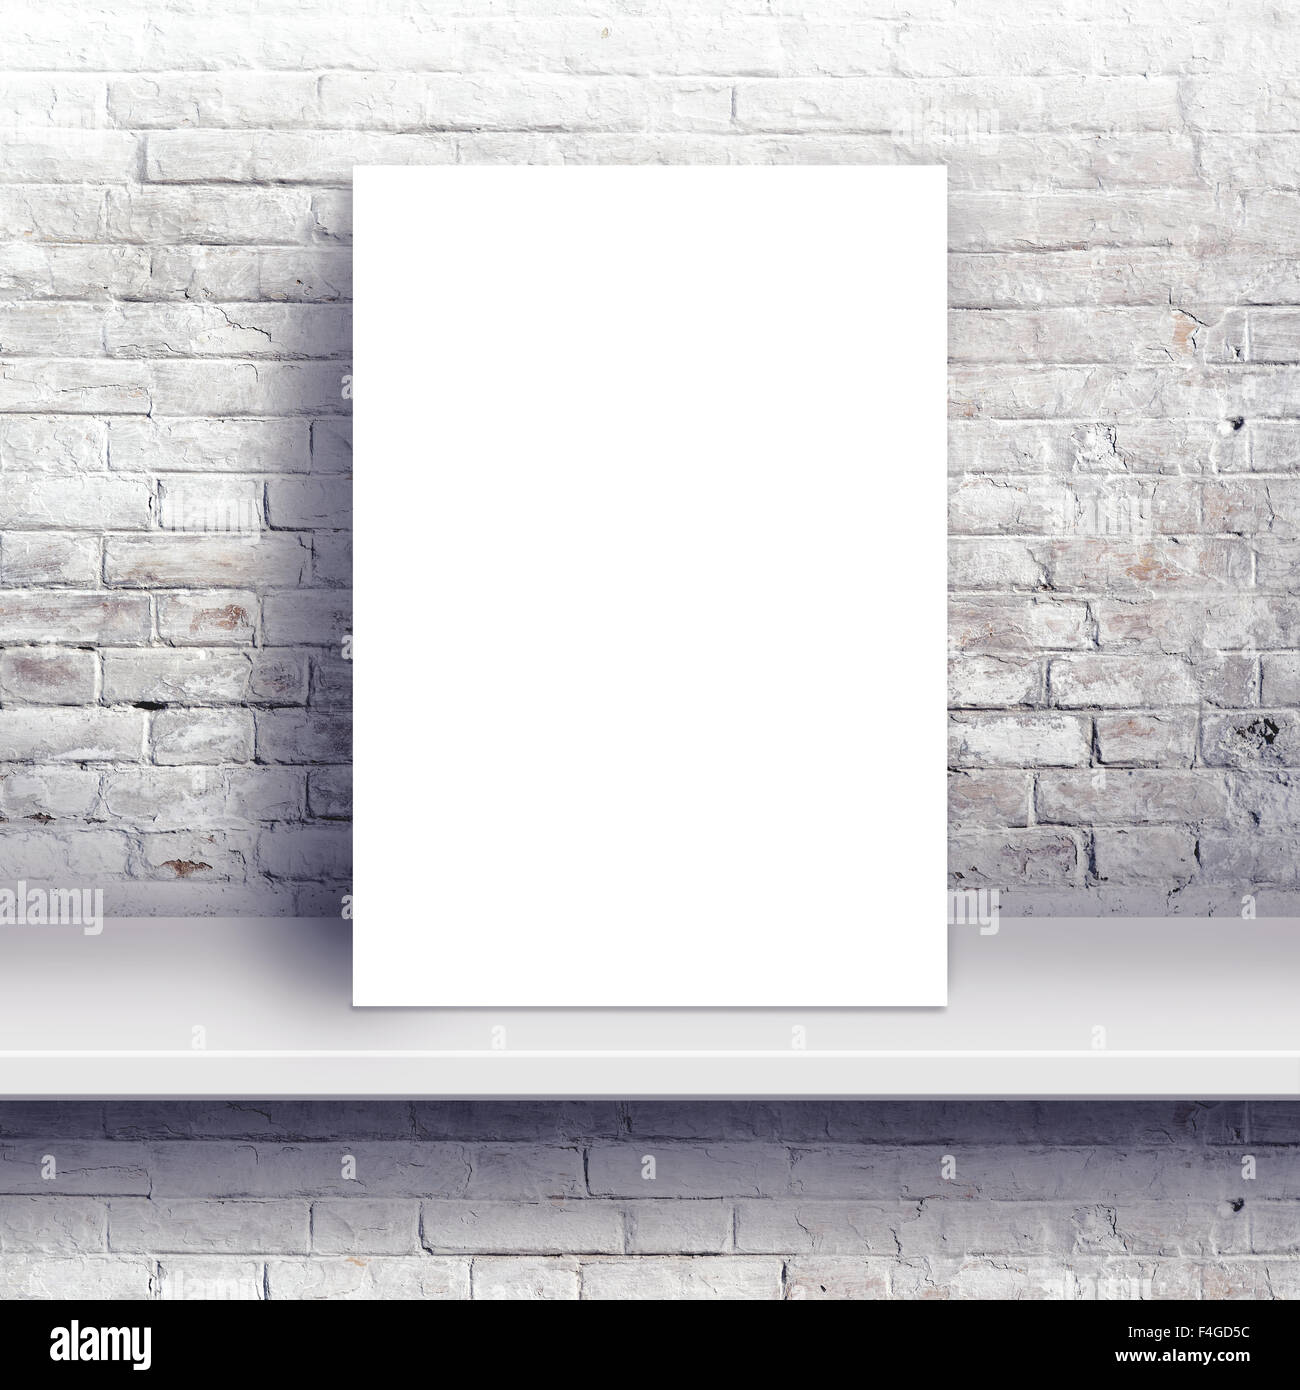 Blank poster mock up as copy space, graphic design background - Stock Image